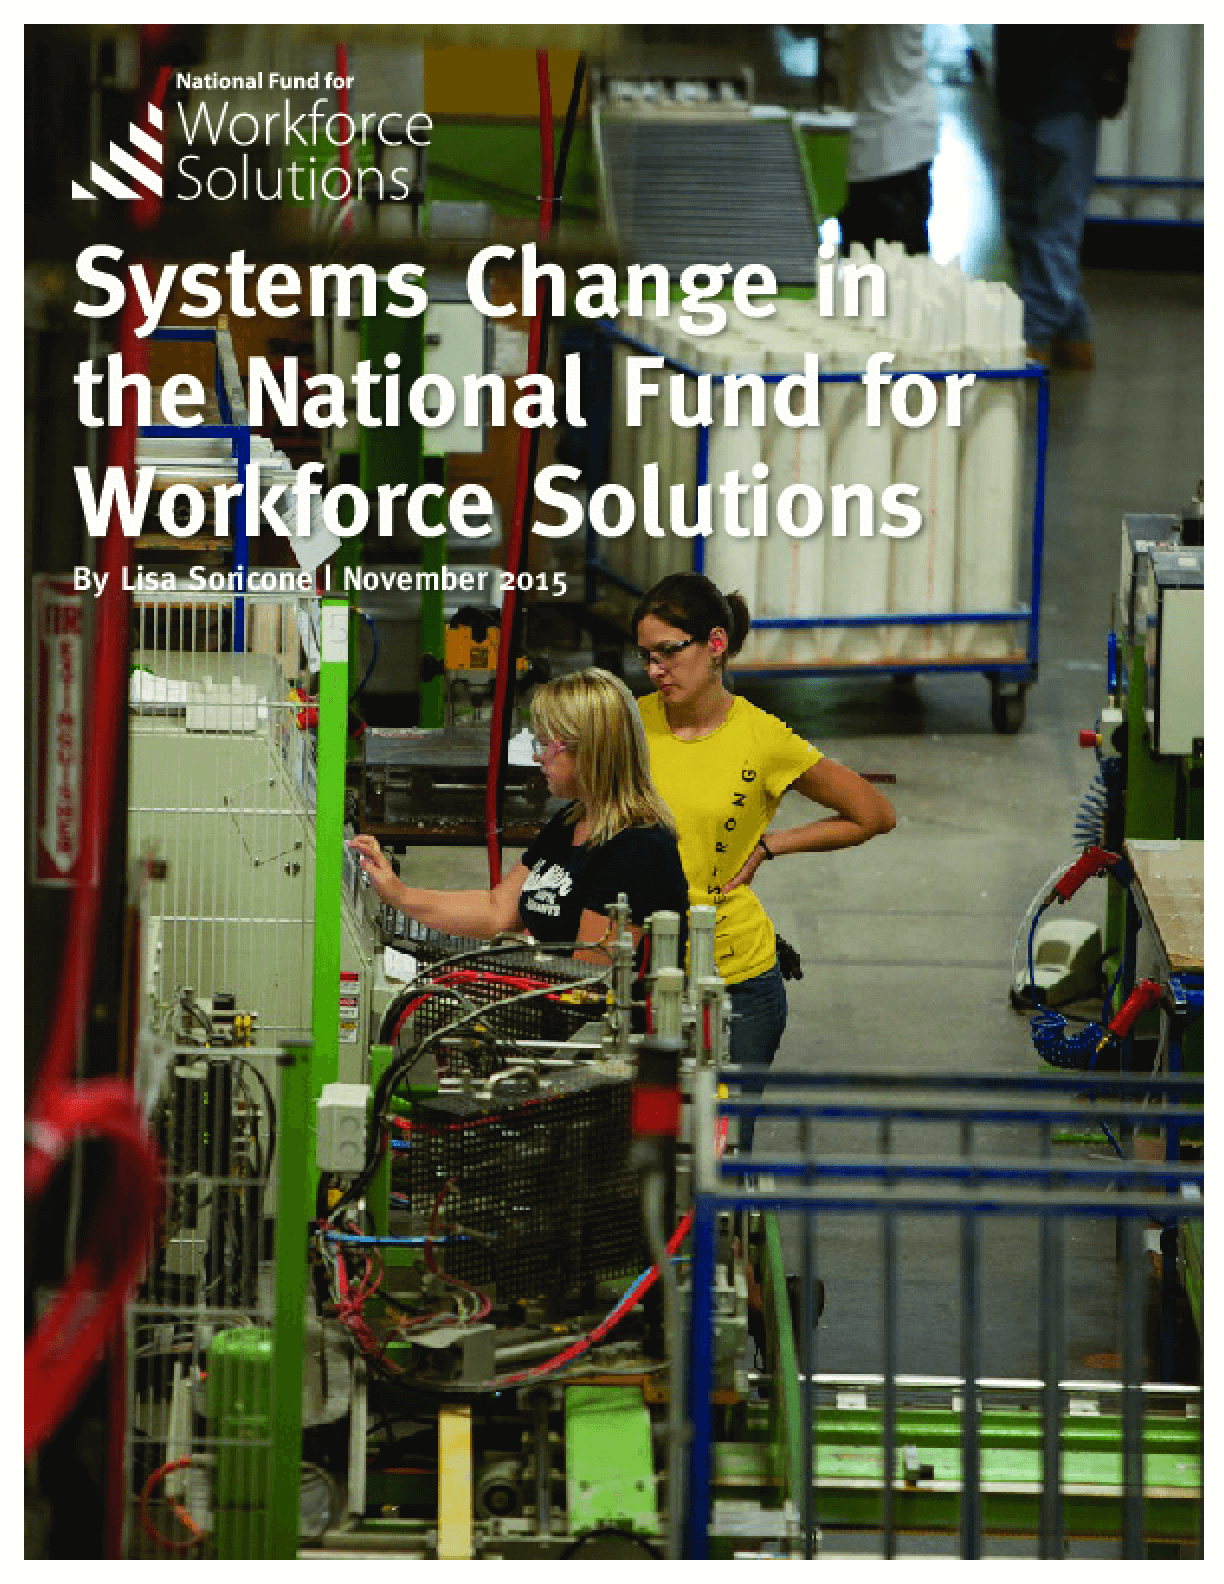 Systems Change in the National Fund for Workforce Solutions